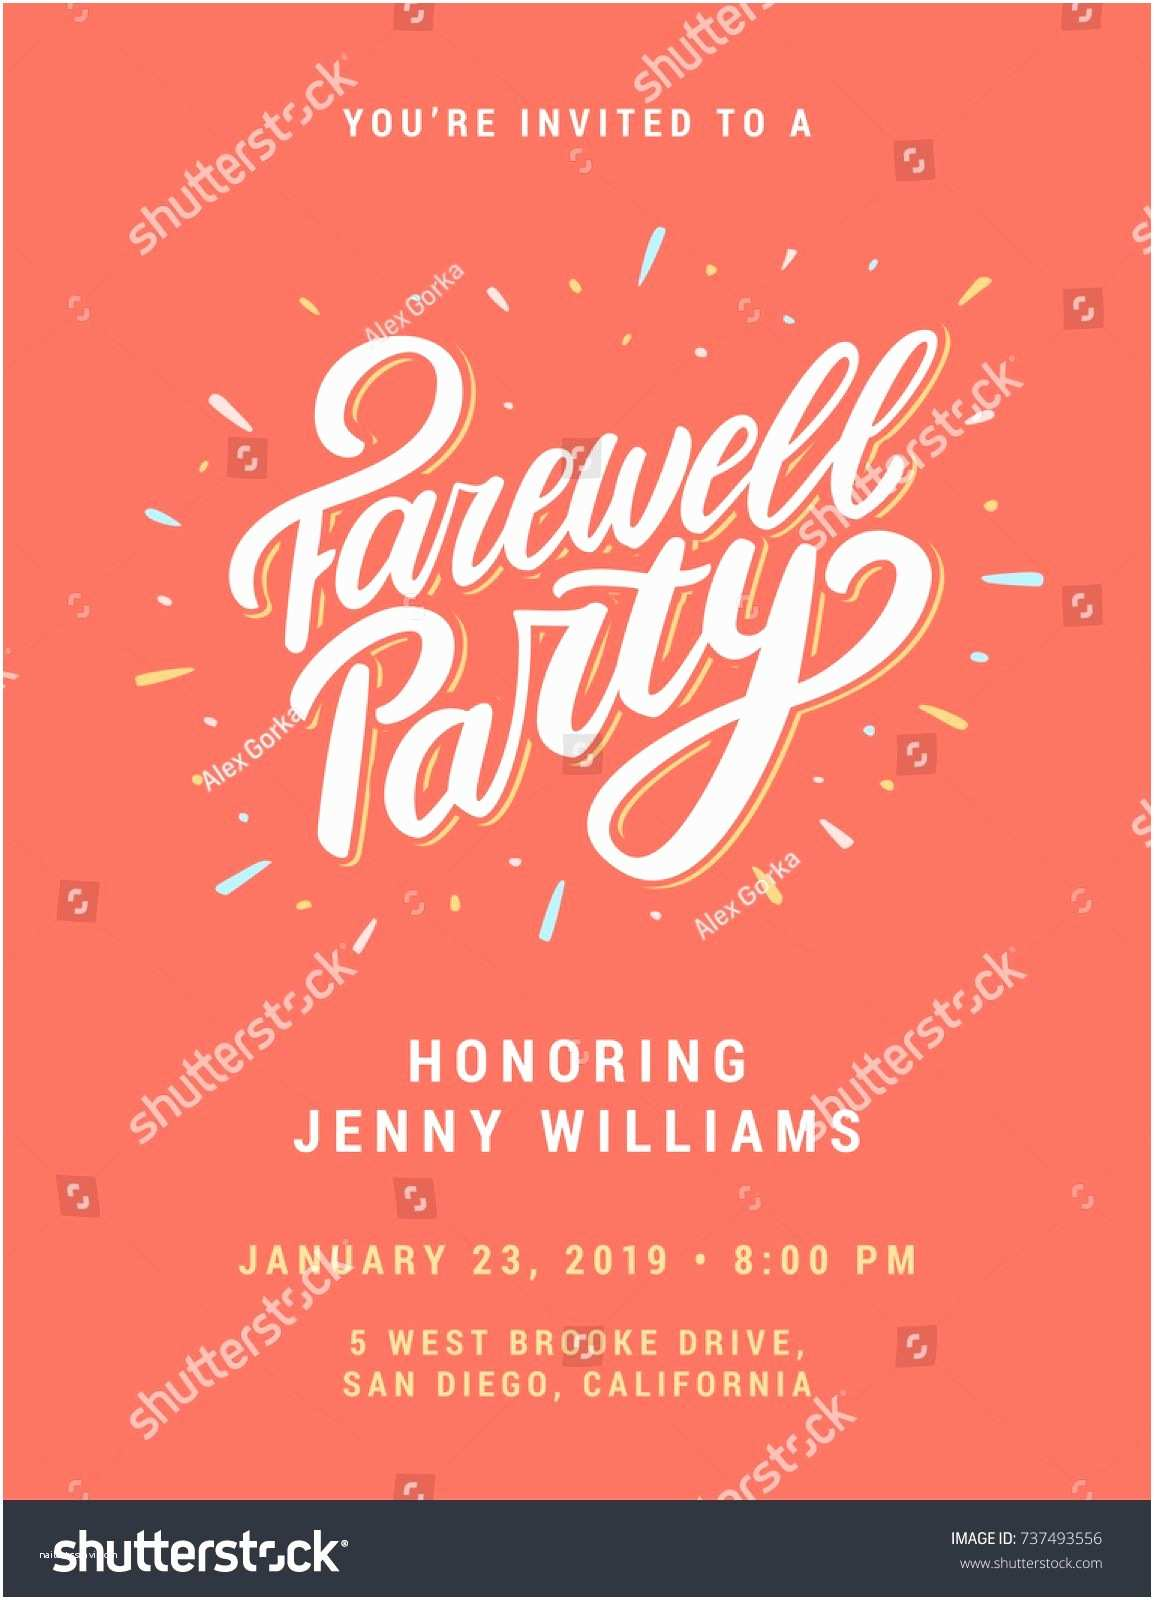 Farewell Party Invitation Template Free Farewell Party Invitation Template Free